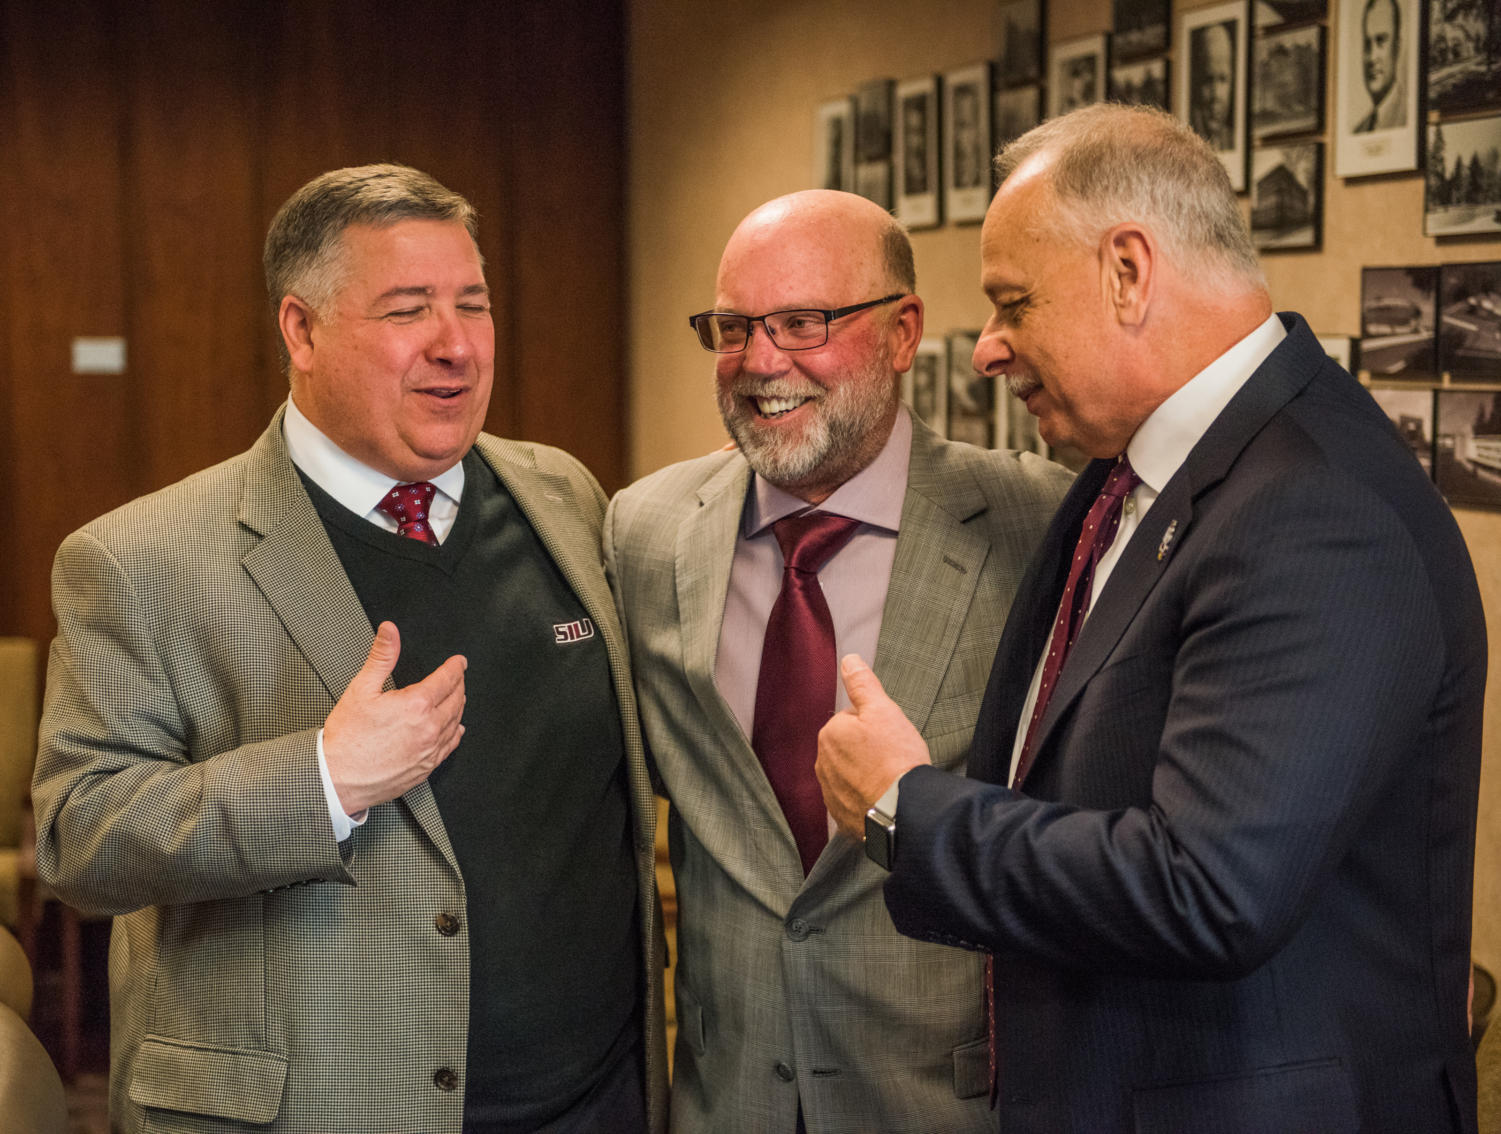 From left: Tommy Bell, SIU Director of Athletics, Jerry Kill, special assistant to the chancellor, and Carlo Montemagno, SIU Chancellor chat Tuesday, January. 30, 2018, after the public announcement of Kill's appointment to serve as an ambassador and fundraiser for the university in Anthony Hall. (Brian Munoz | @BrianMMunoz)